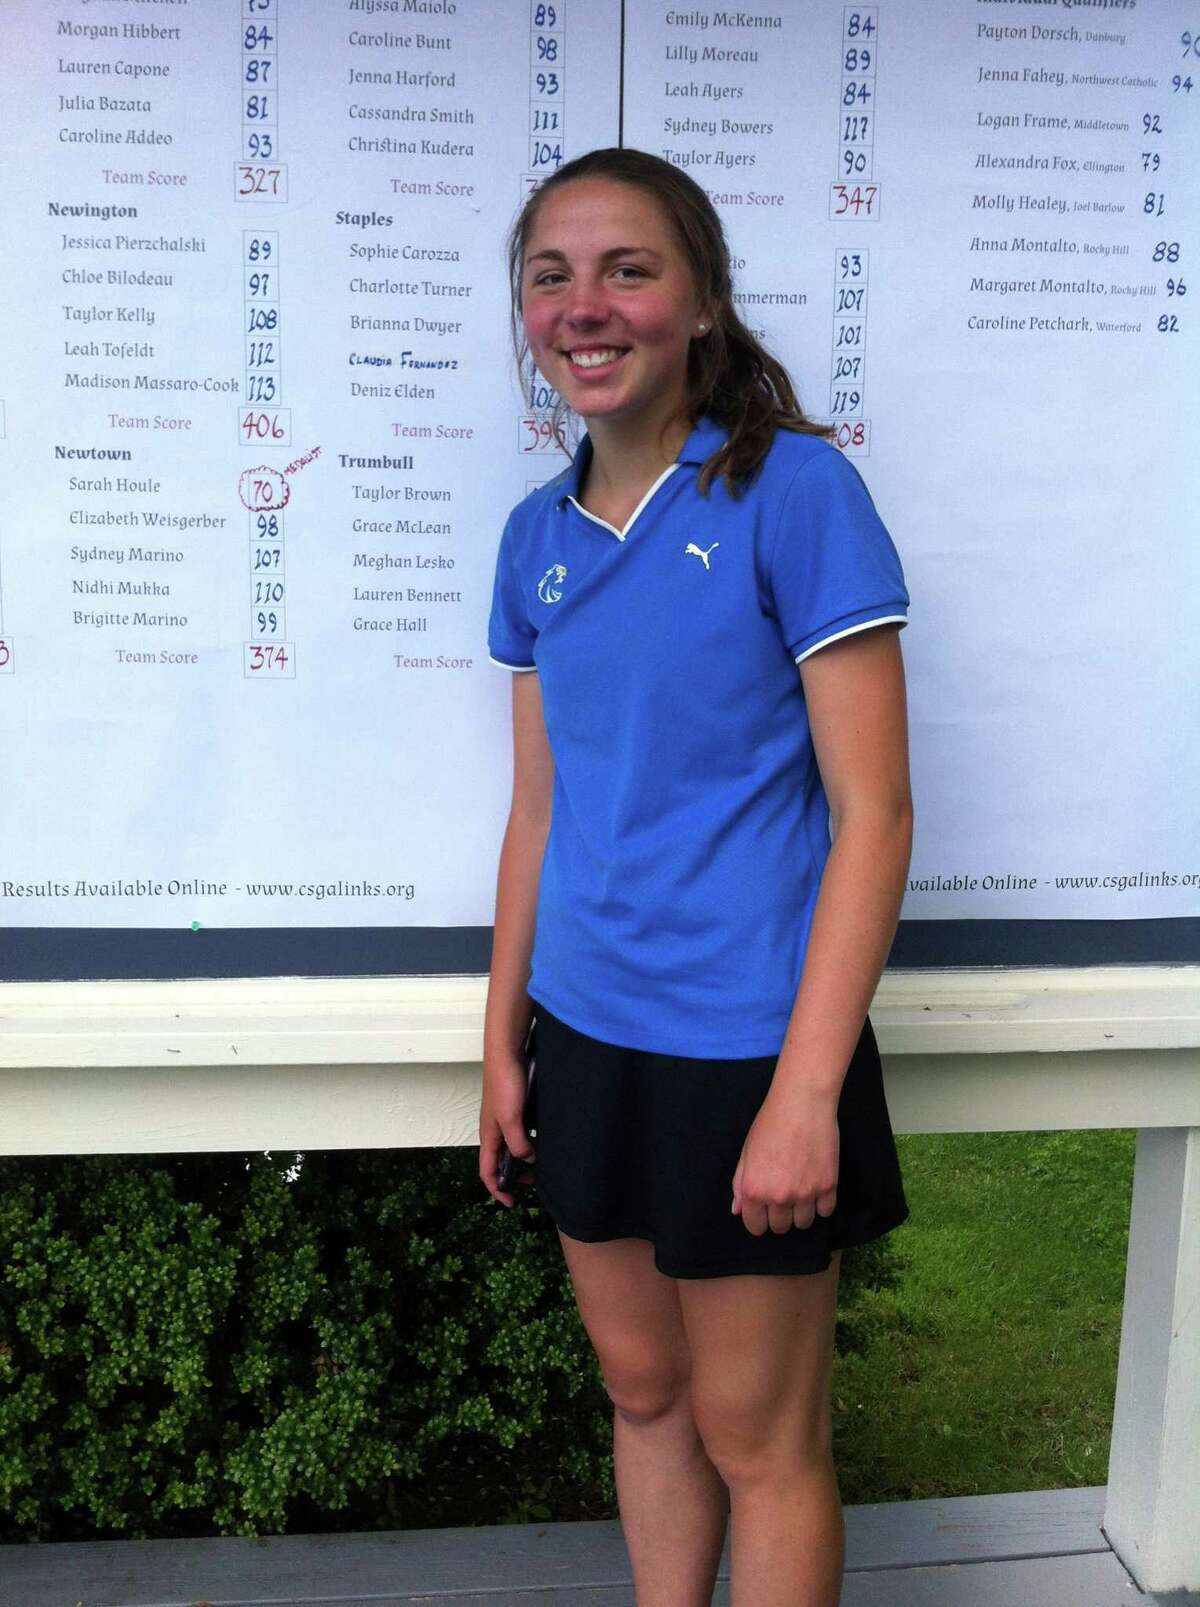 Sarah Houle of Newtown was the medalist at the CIAC girls golf championship on Tuesday, June 5, 2018 at Tashua Knolls Golf Club in Trumbull, Conn. Houle shot a 2-under par 70.